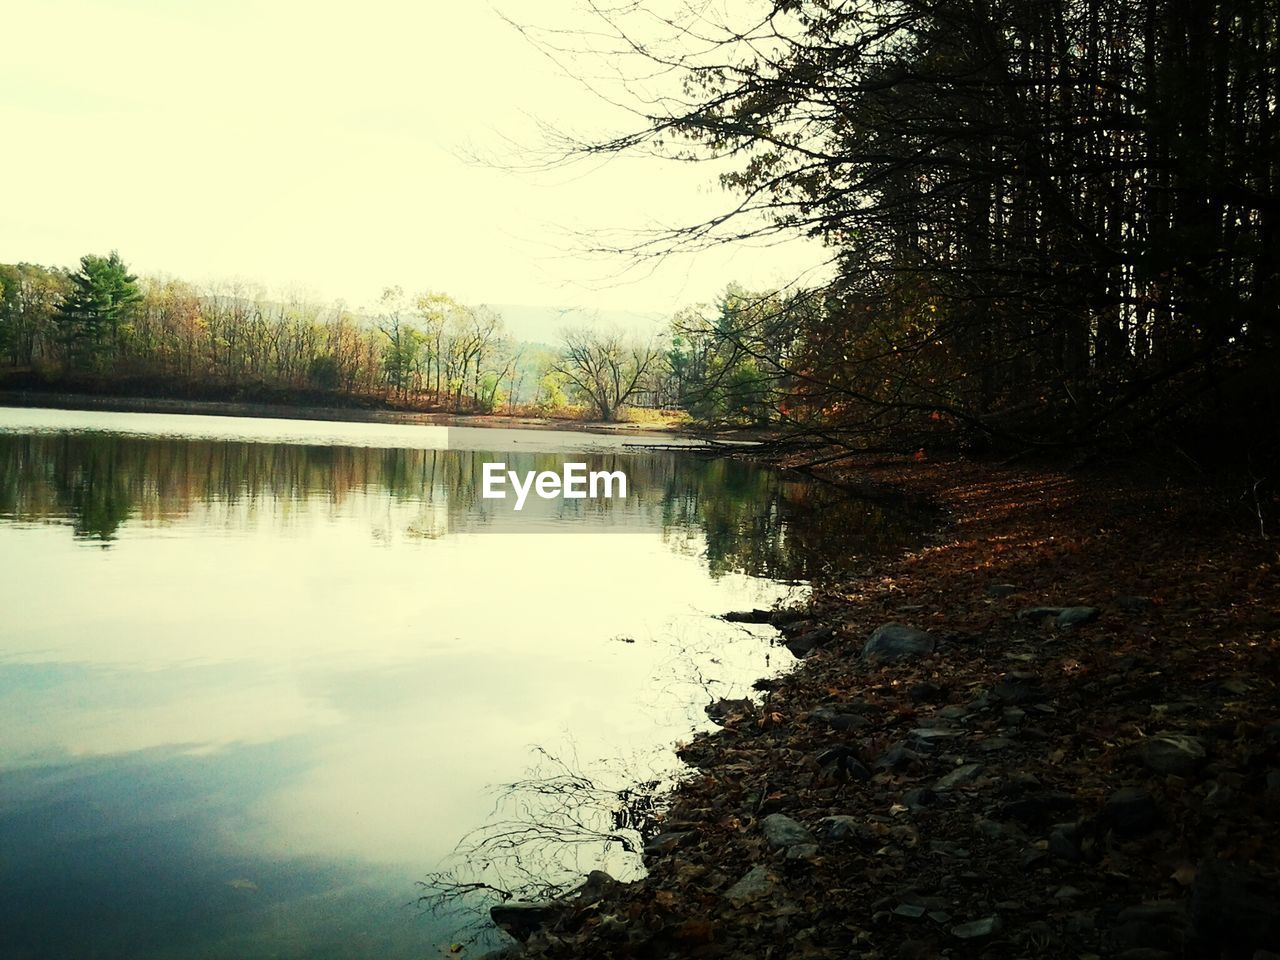 water, tree, reflection, lake, nature, tranquility, tranquil scene, beauty in nature, scenics, outdoors, no people, standing water, sky, day, forest